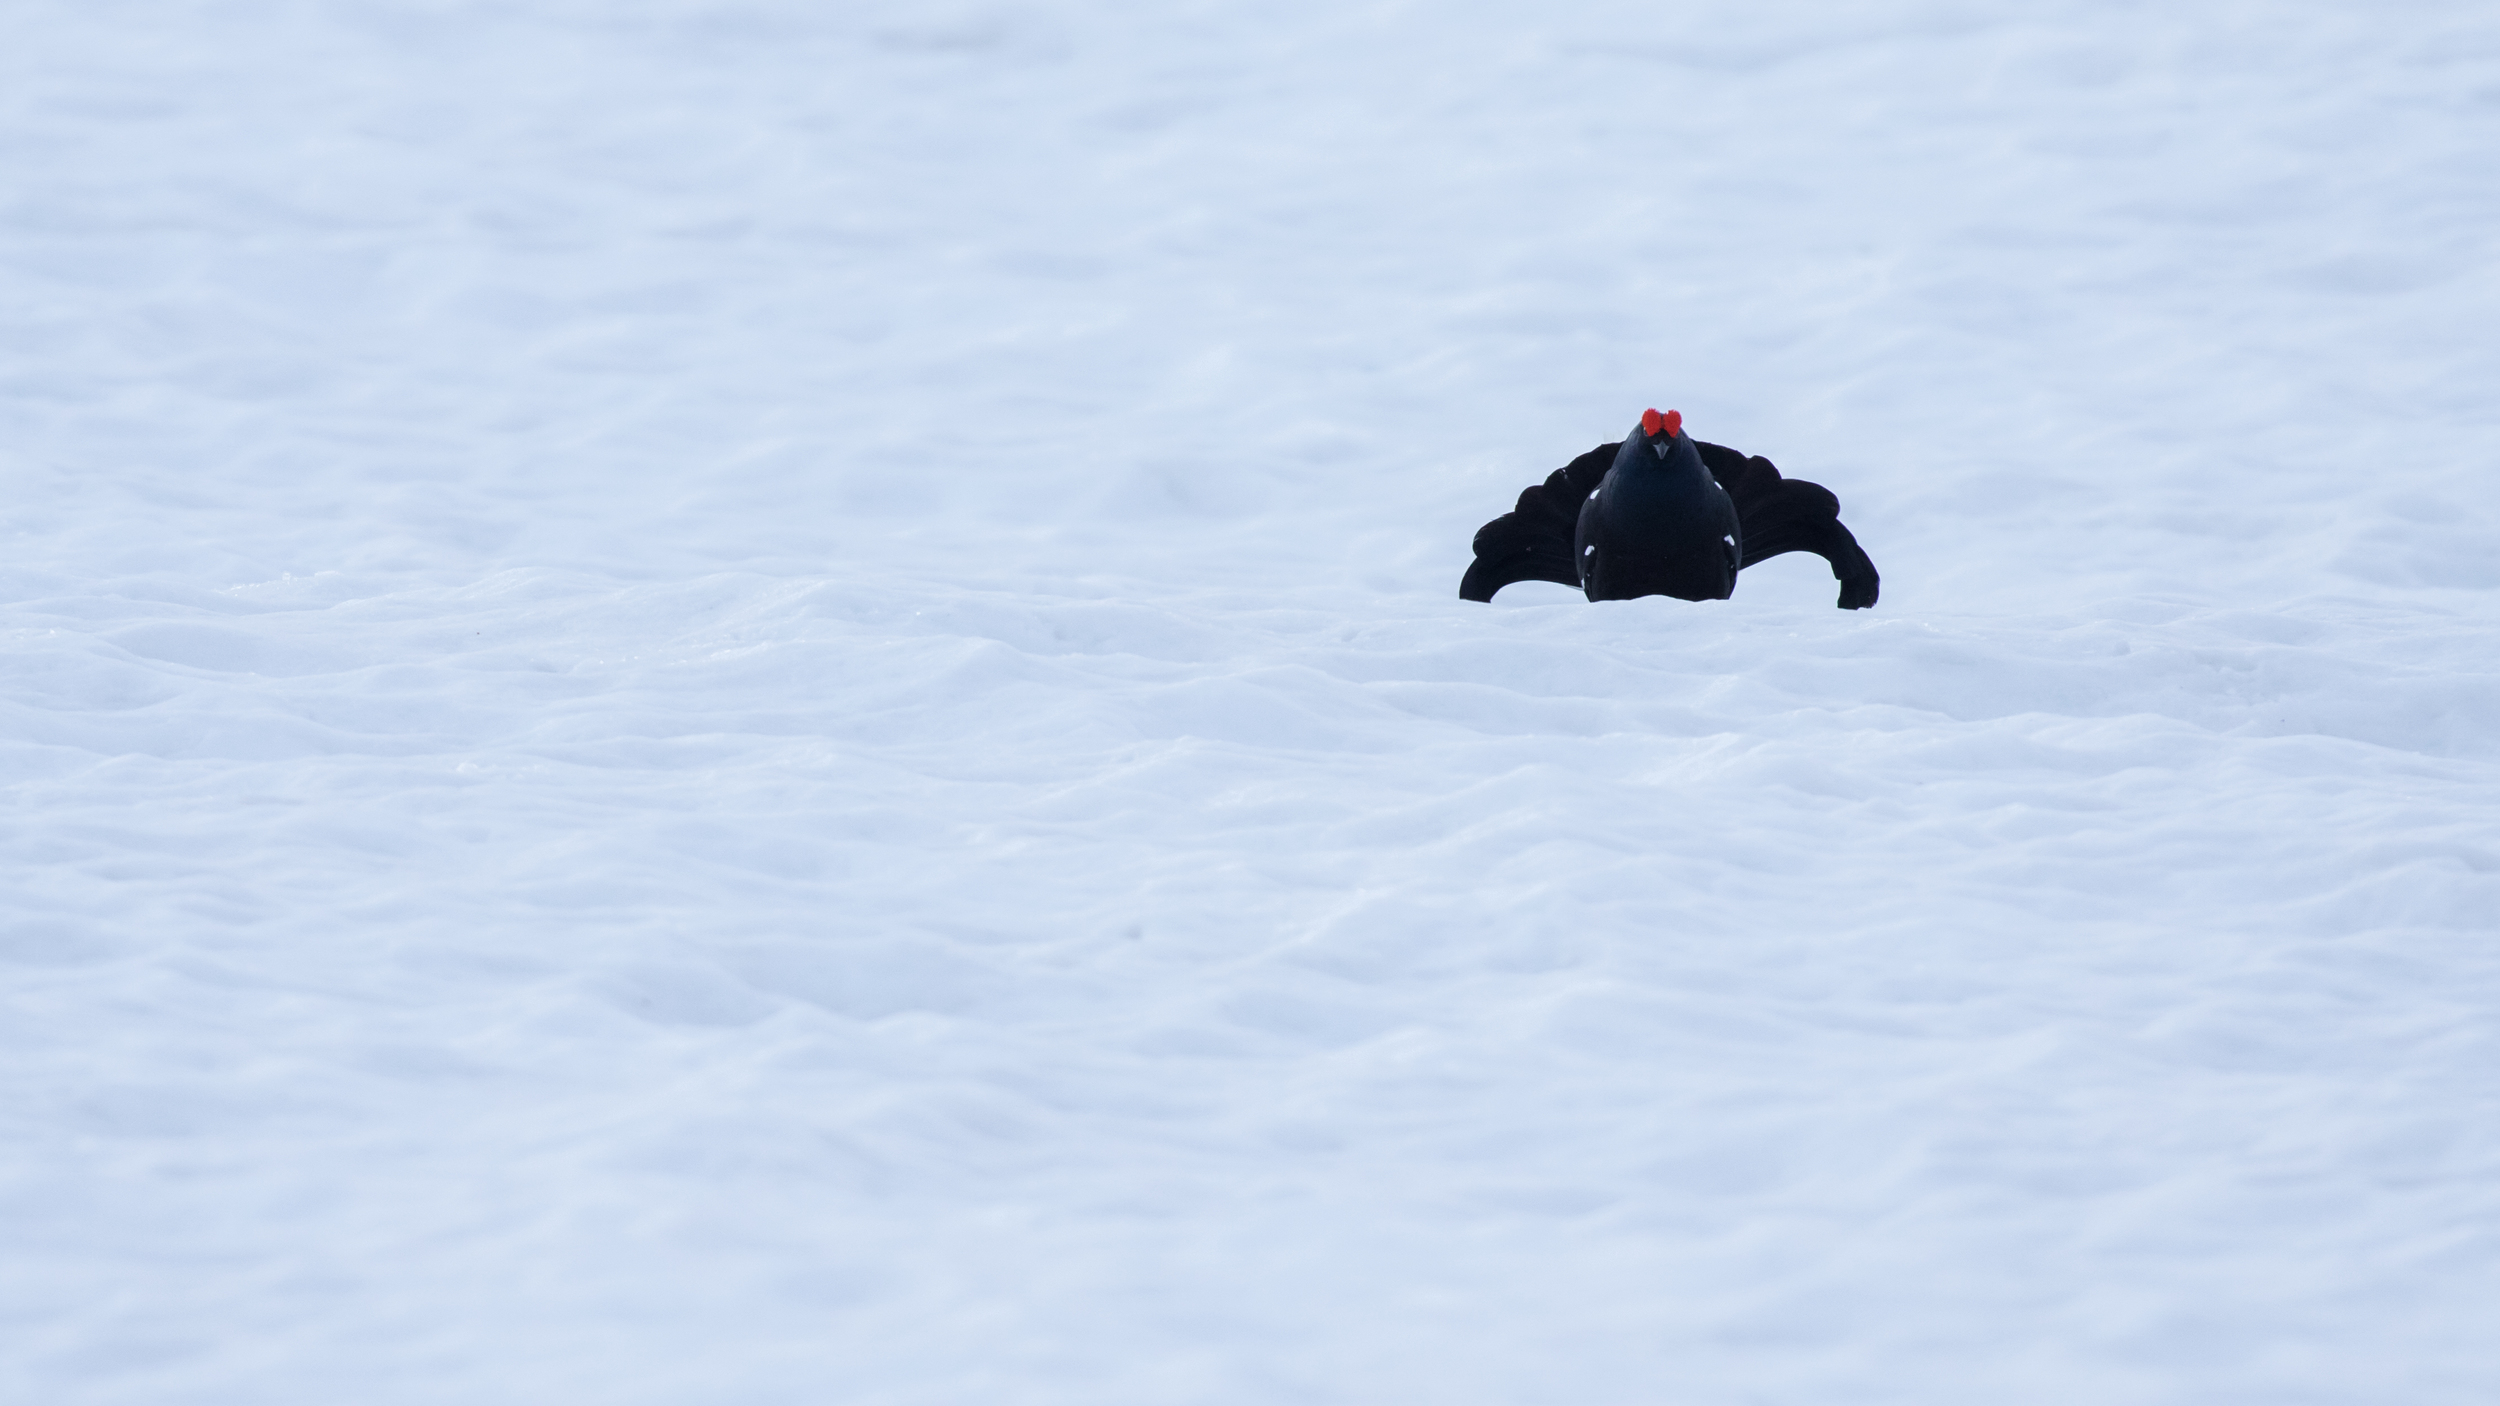 Black Grouse (Lyrurus tetrix) near Chamonix, France. April 2015. Not baited. Not called in.